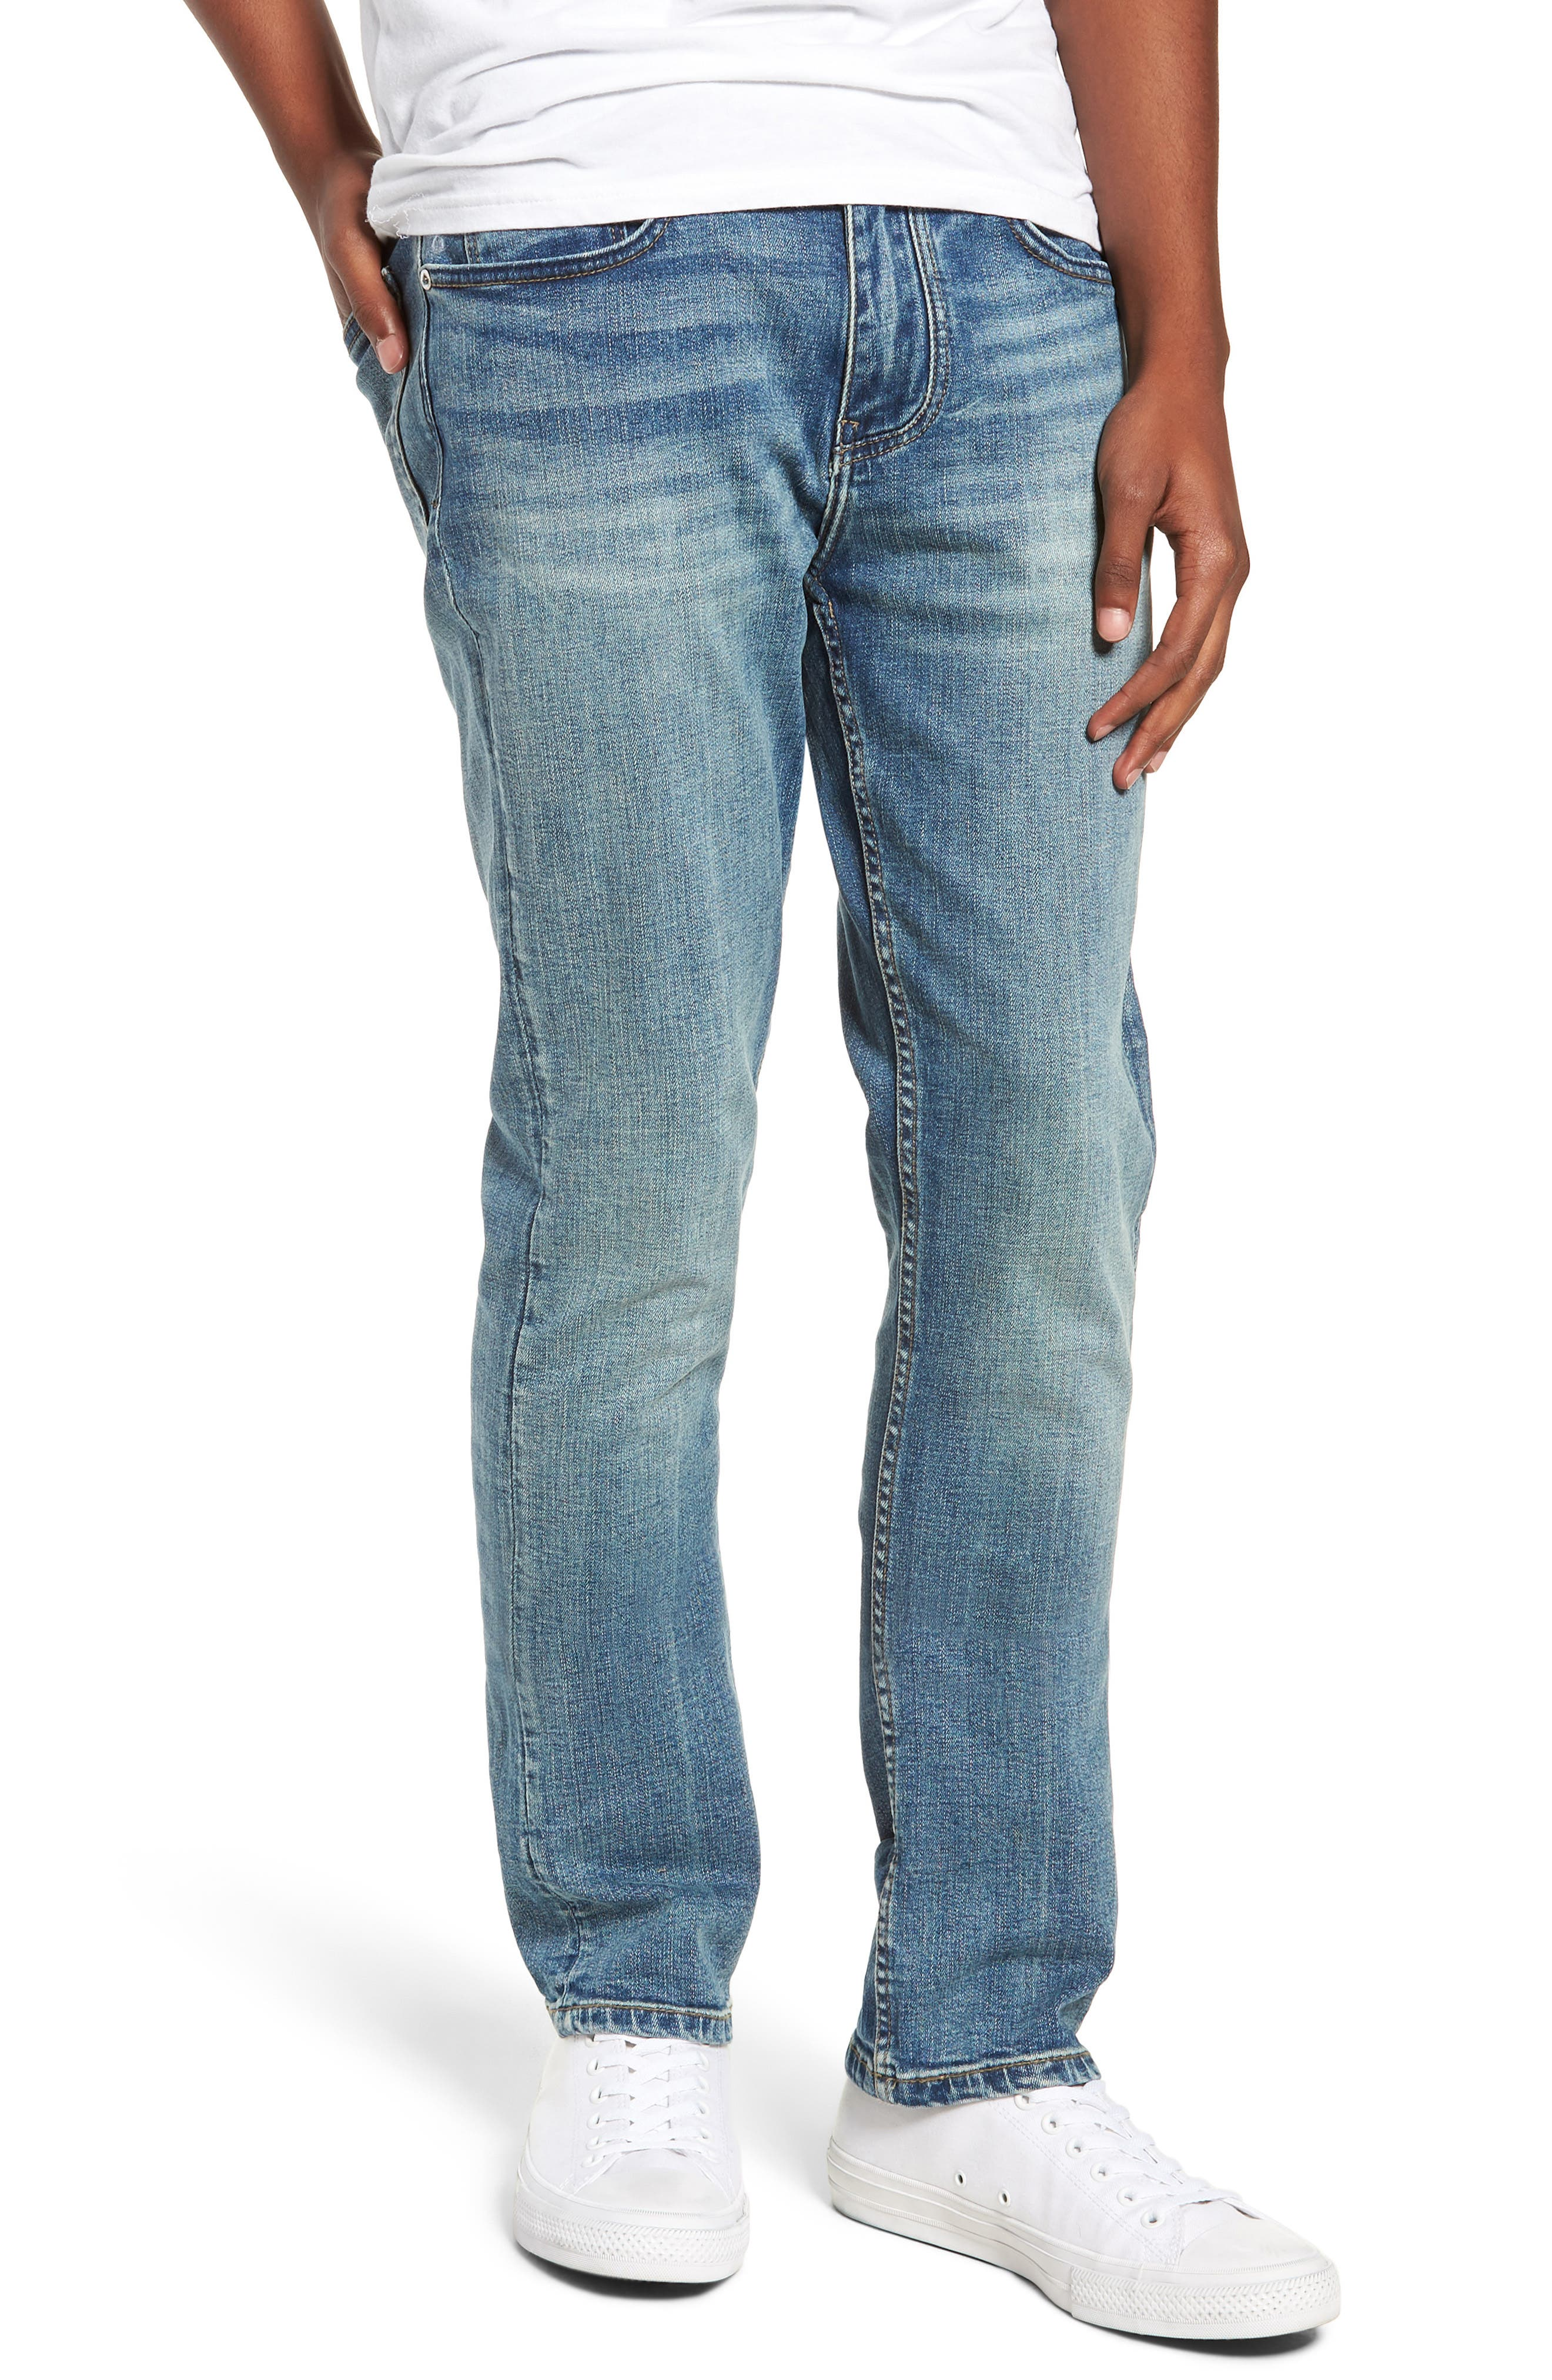 Wooster Selvedge Slim Fit Jeans,                             Main thumbnail 1, color,                             LIGHT WORK